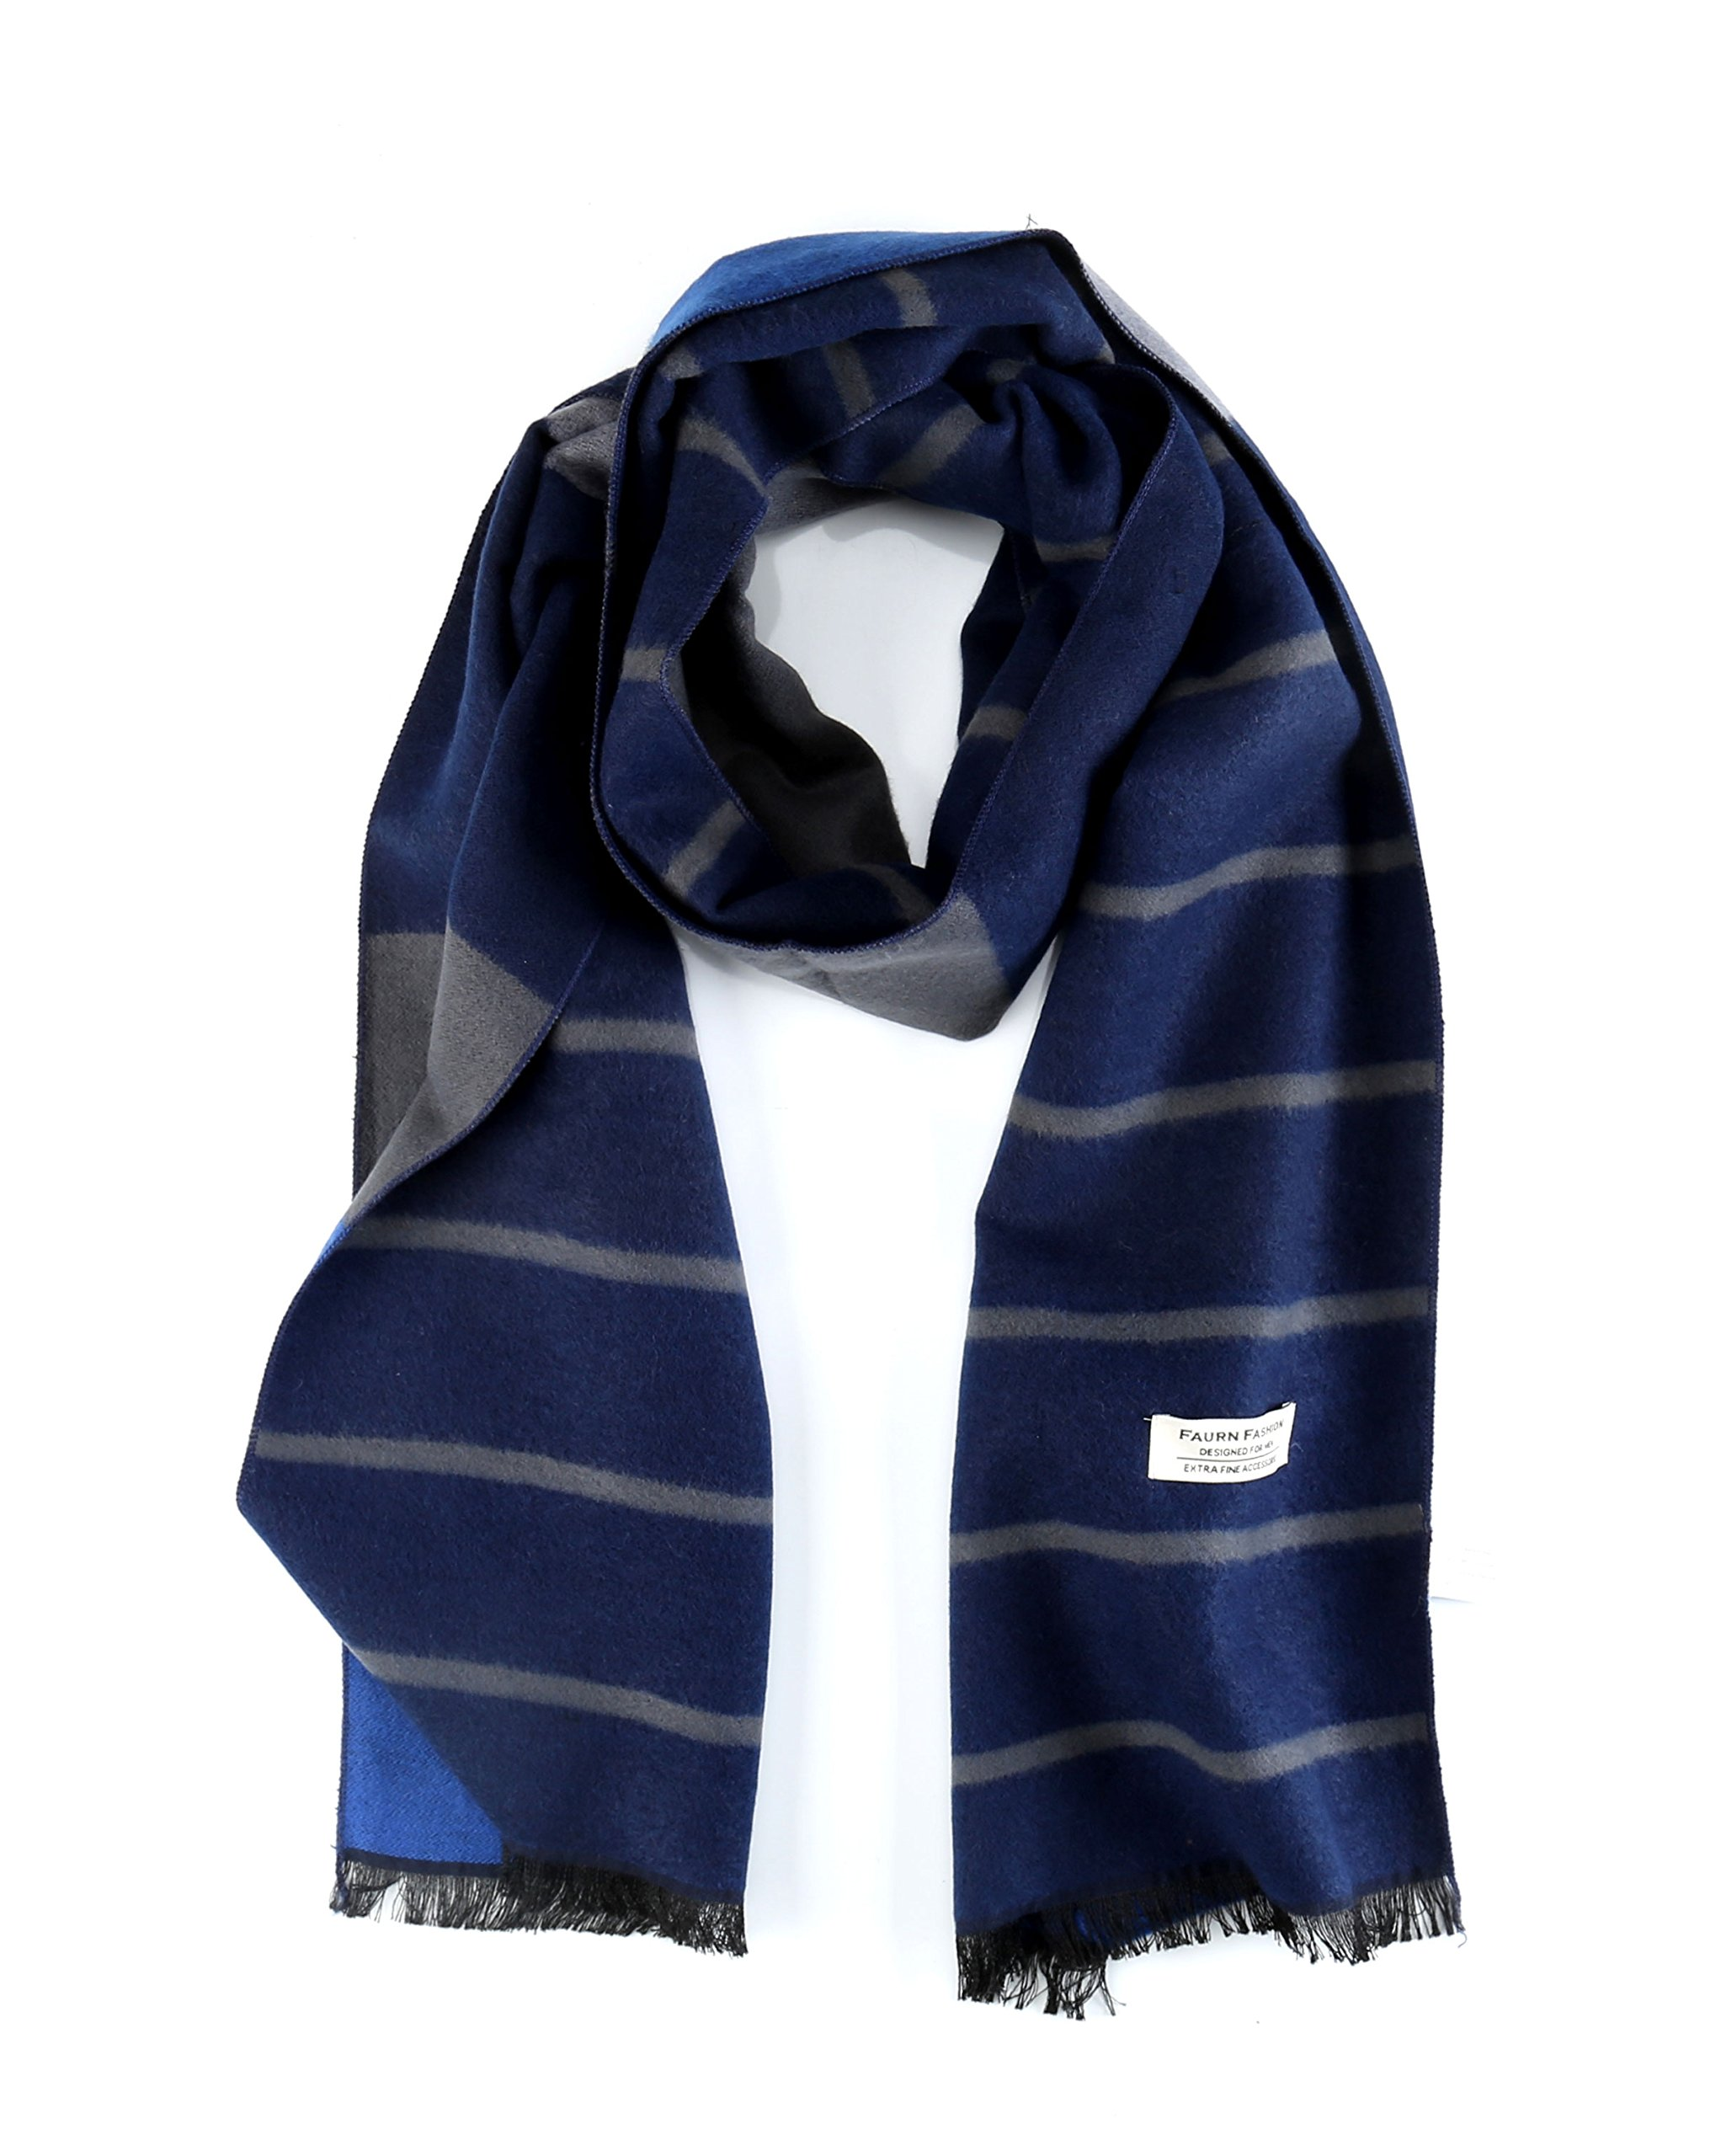 Mens Winter Scarf, Faurn Fashion Plaid Stripes Long Cashmere & Pashmina Feel Warm Neck Scarves Blue Stripes